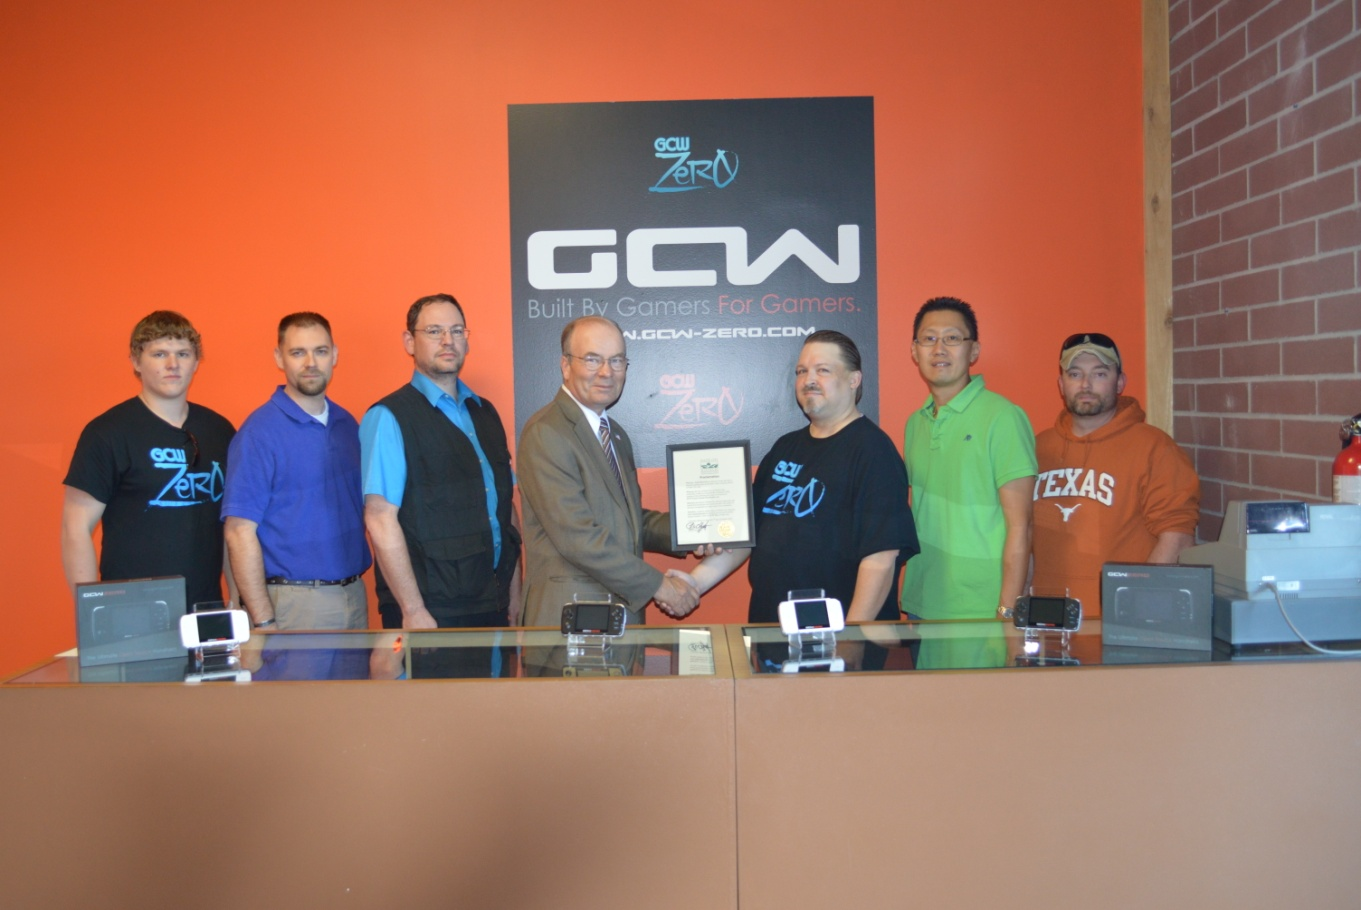 Game Consoles Worldwide, LLC was welcomed to Platte City in a ceremony last week. Pictured, from left — Kaleb Lorg-Barwick, Jason Parkes, John McPherson, Platte City Mayor Frank Offutt, Justin Barwick, Kyong Pak and Thad Crawford. The business is located at 1302 Platte Falls Road, Suite G in Platte City.